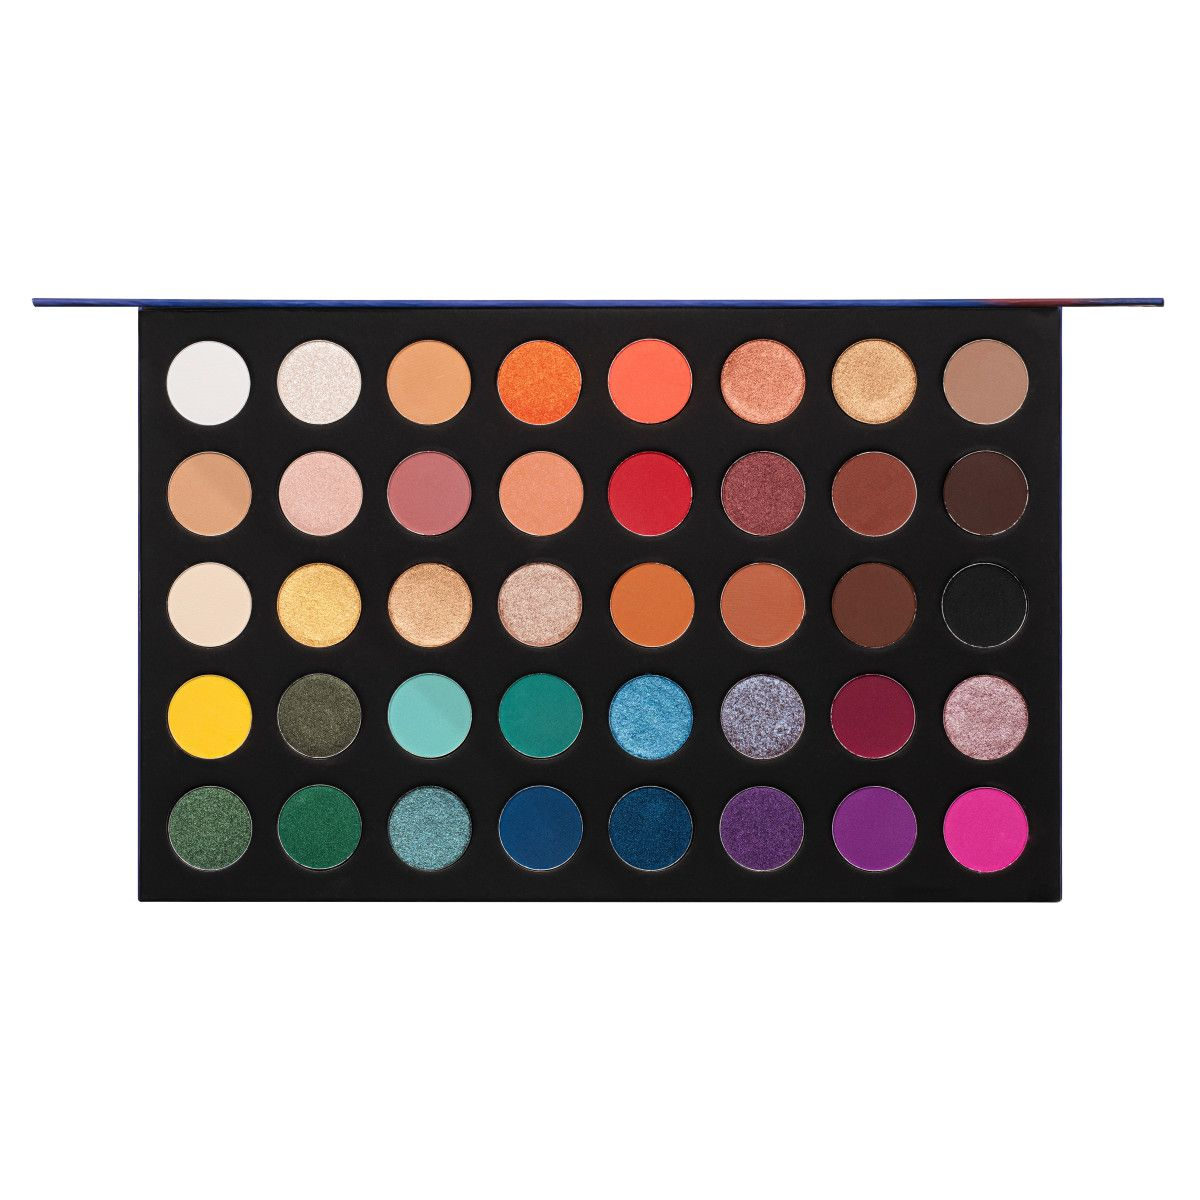 Wet N Wild The 40 Eyeshadow Palette